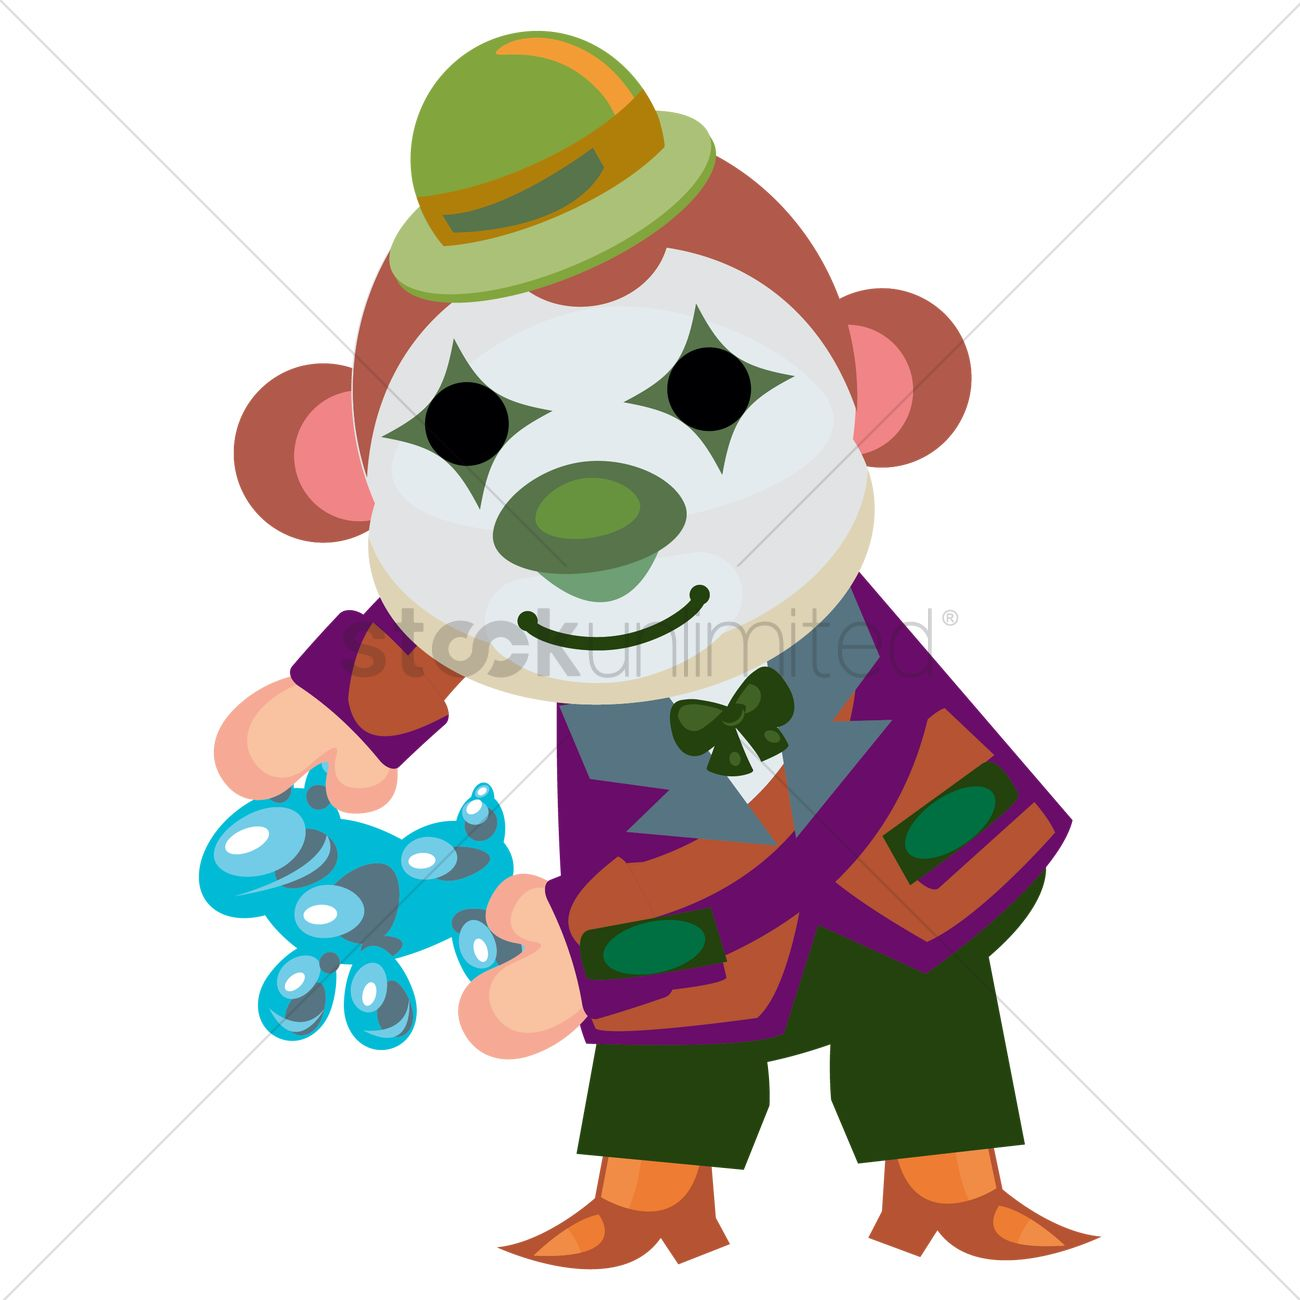 Balloon animal clown clipart banner transparent download Circus monkey with clown face paint making balloon animals Vector ... banner transparent download